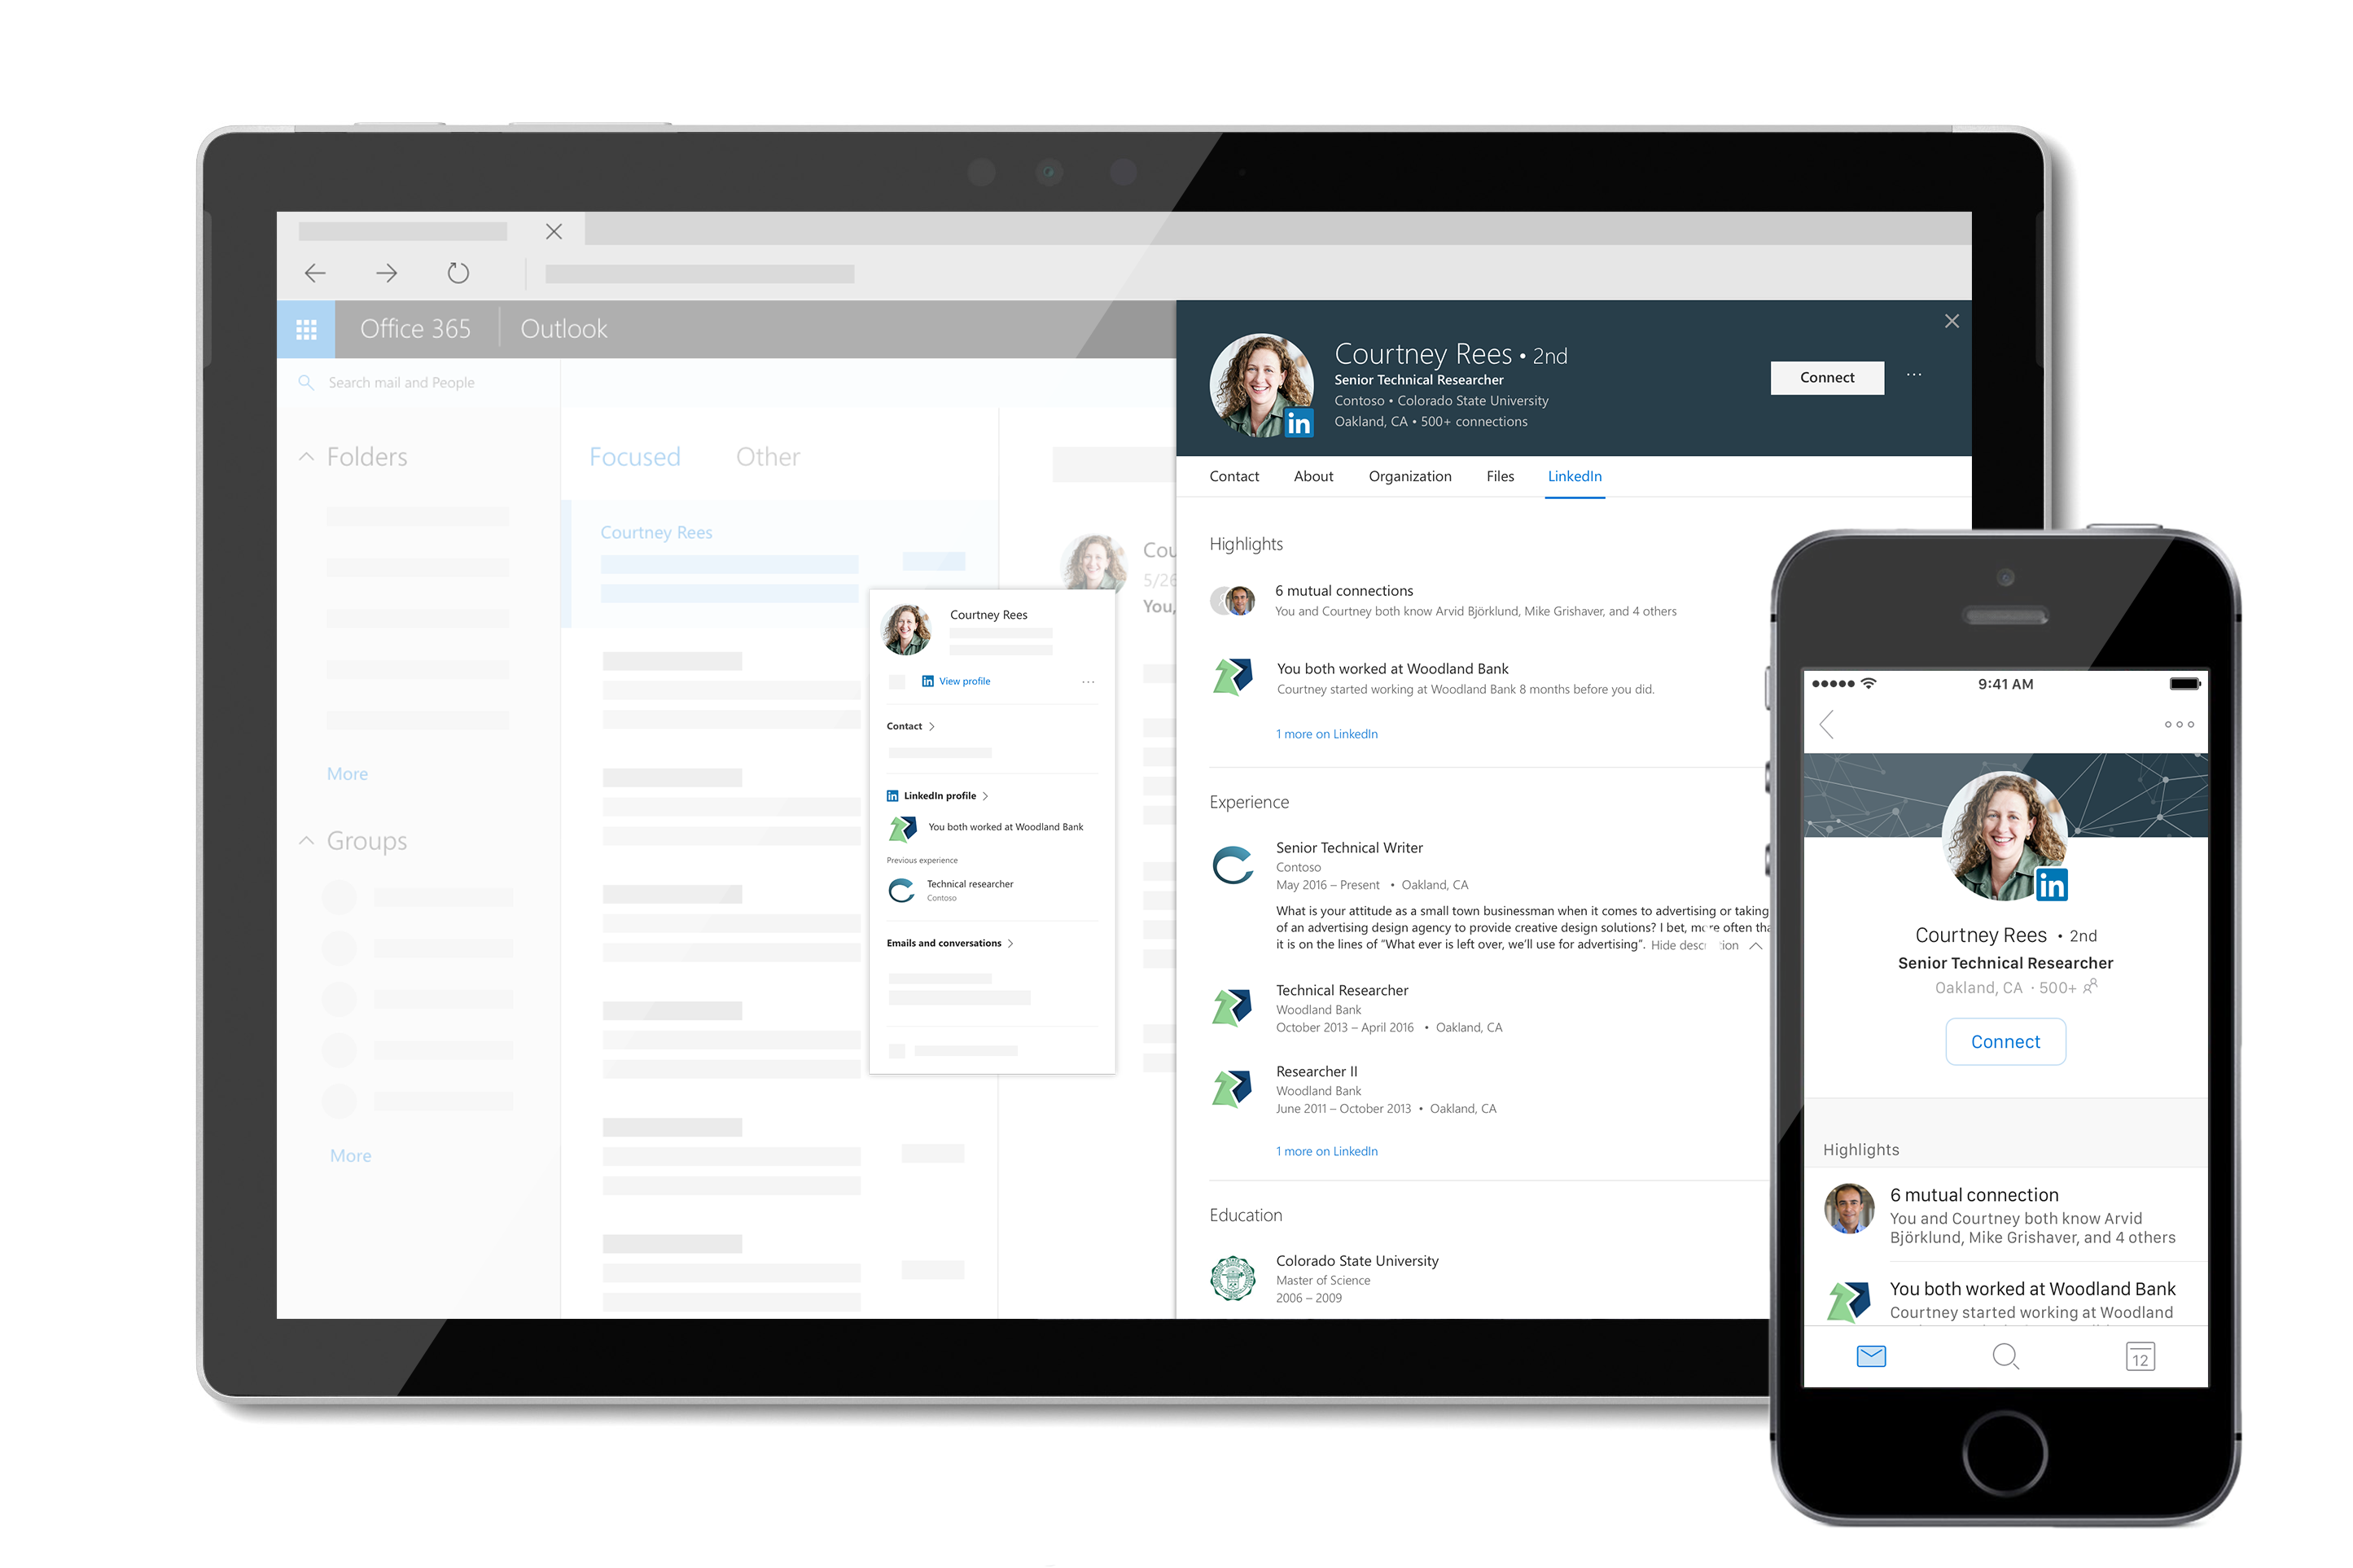 LinkedIn offers integration with the Profile Card in Office 365